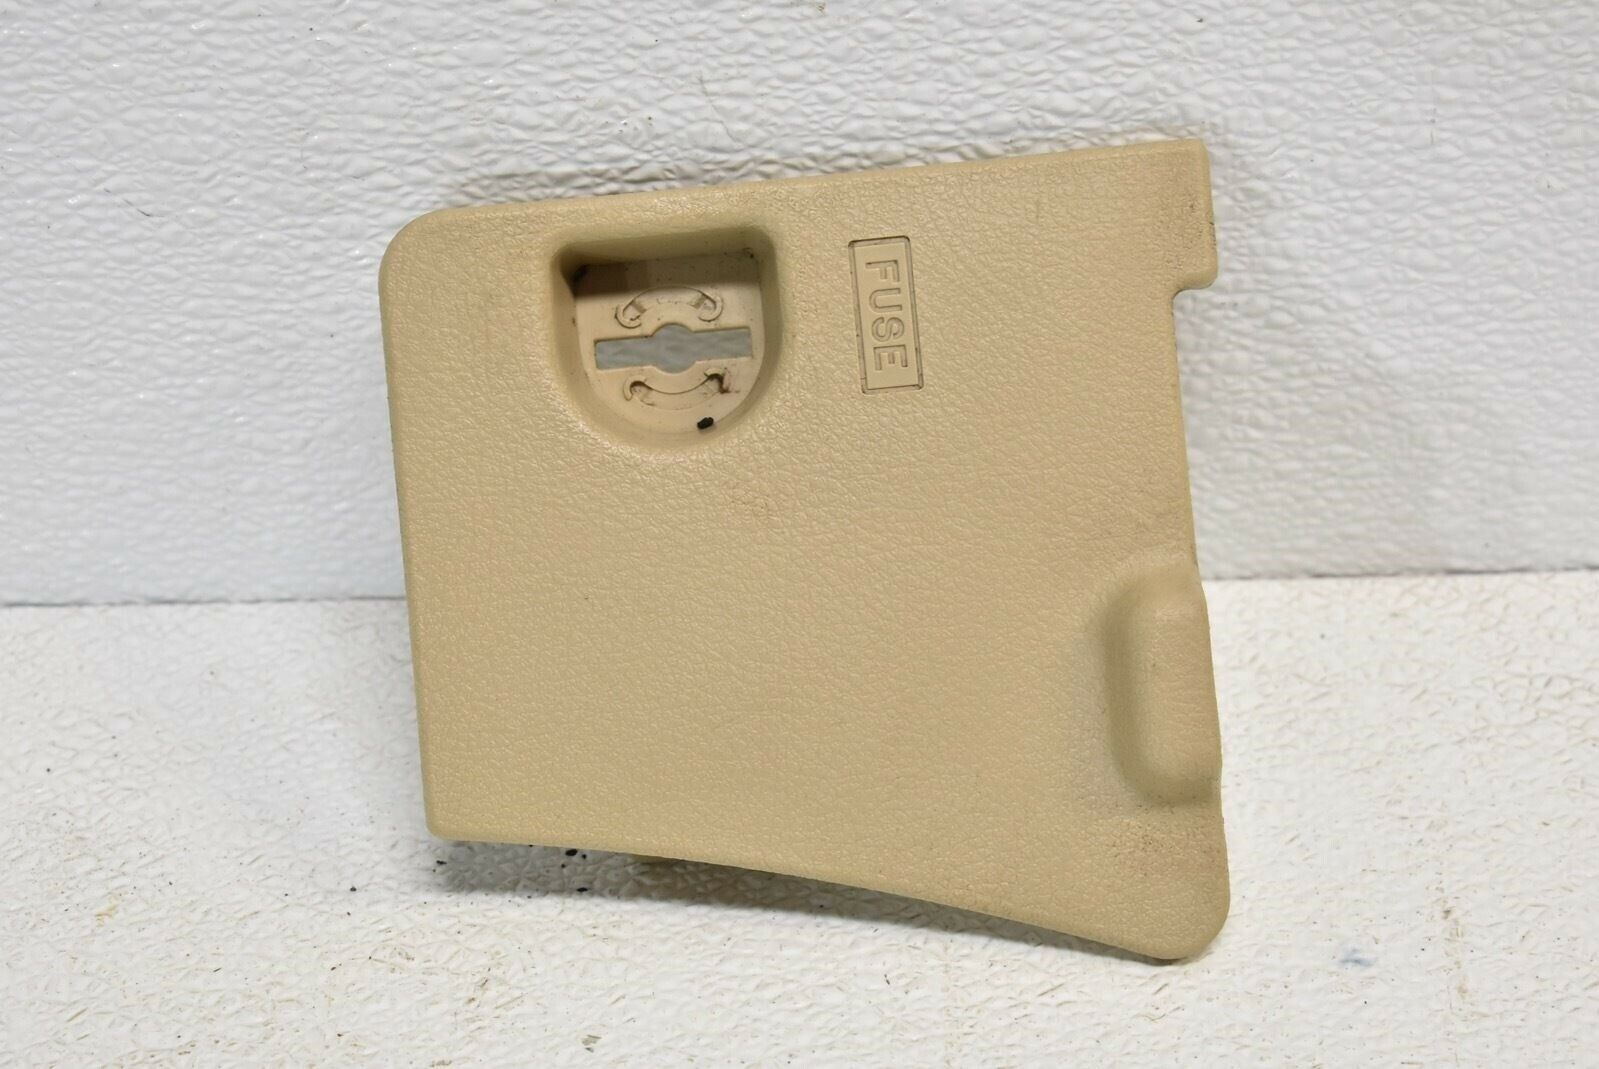 40 40 Honda Accord EX Fuse Box Cover Lid OEM 40 40   eBay